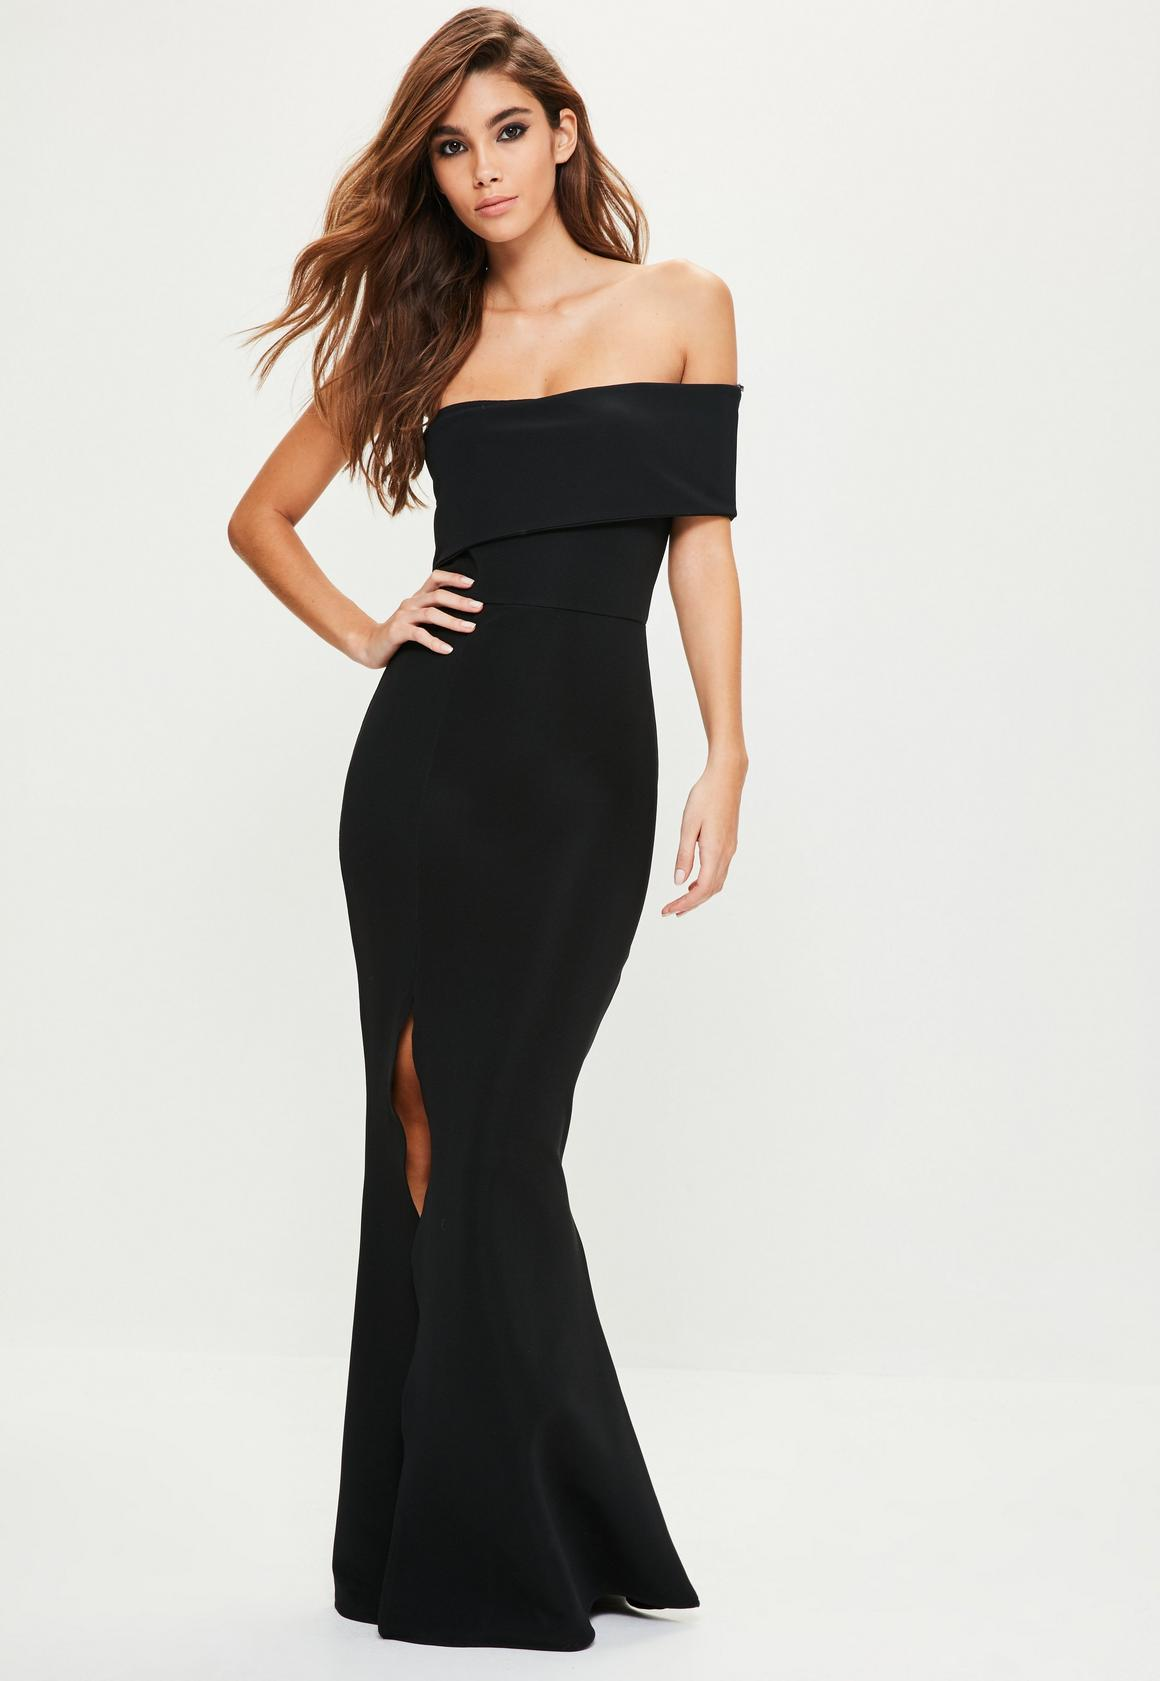 Black One Shoulder Maxi Dress | Missguided